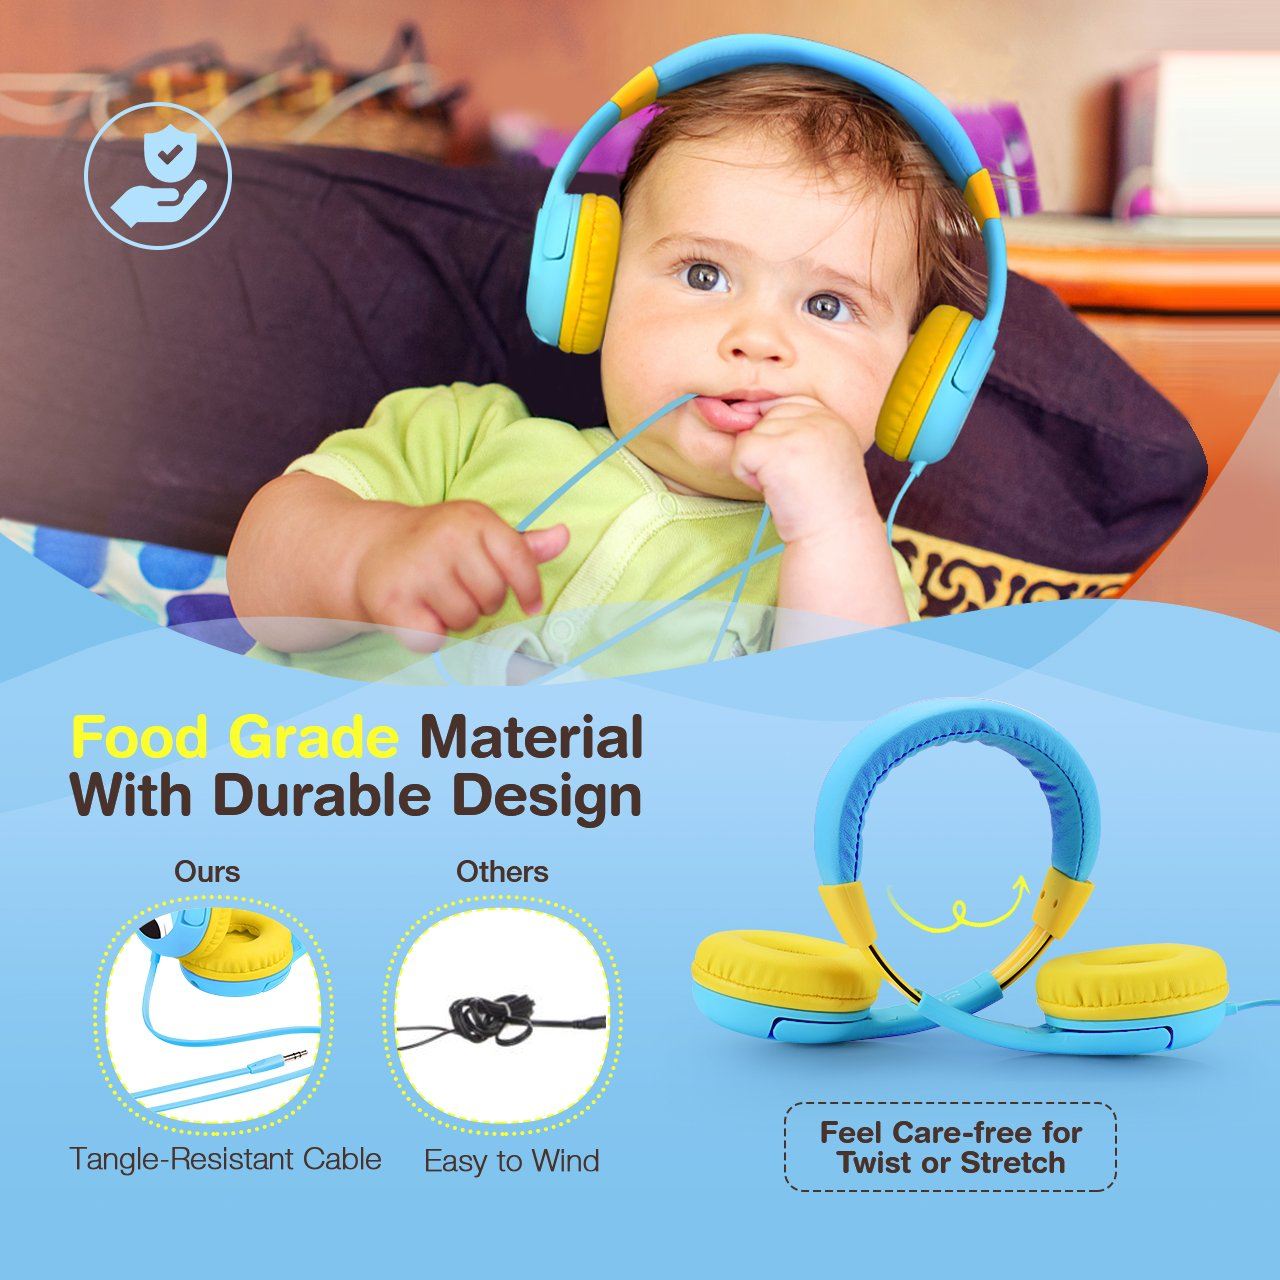 429adcae47e Mpow Kids Headphones with 85dB Volume Limited Hearing Protection & Music  Sharing Function, Kids Friendly Safe Food Grade Material, Tangle-Free Cord,  ...